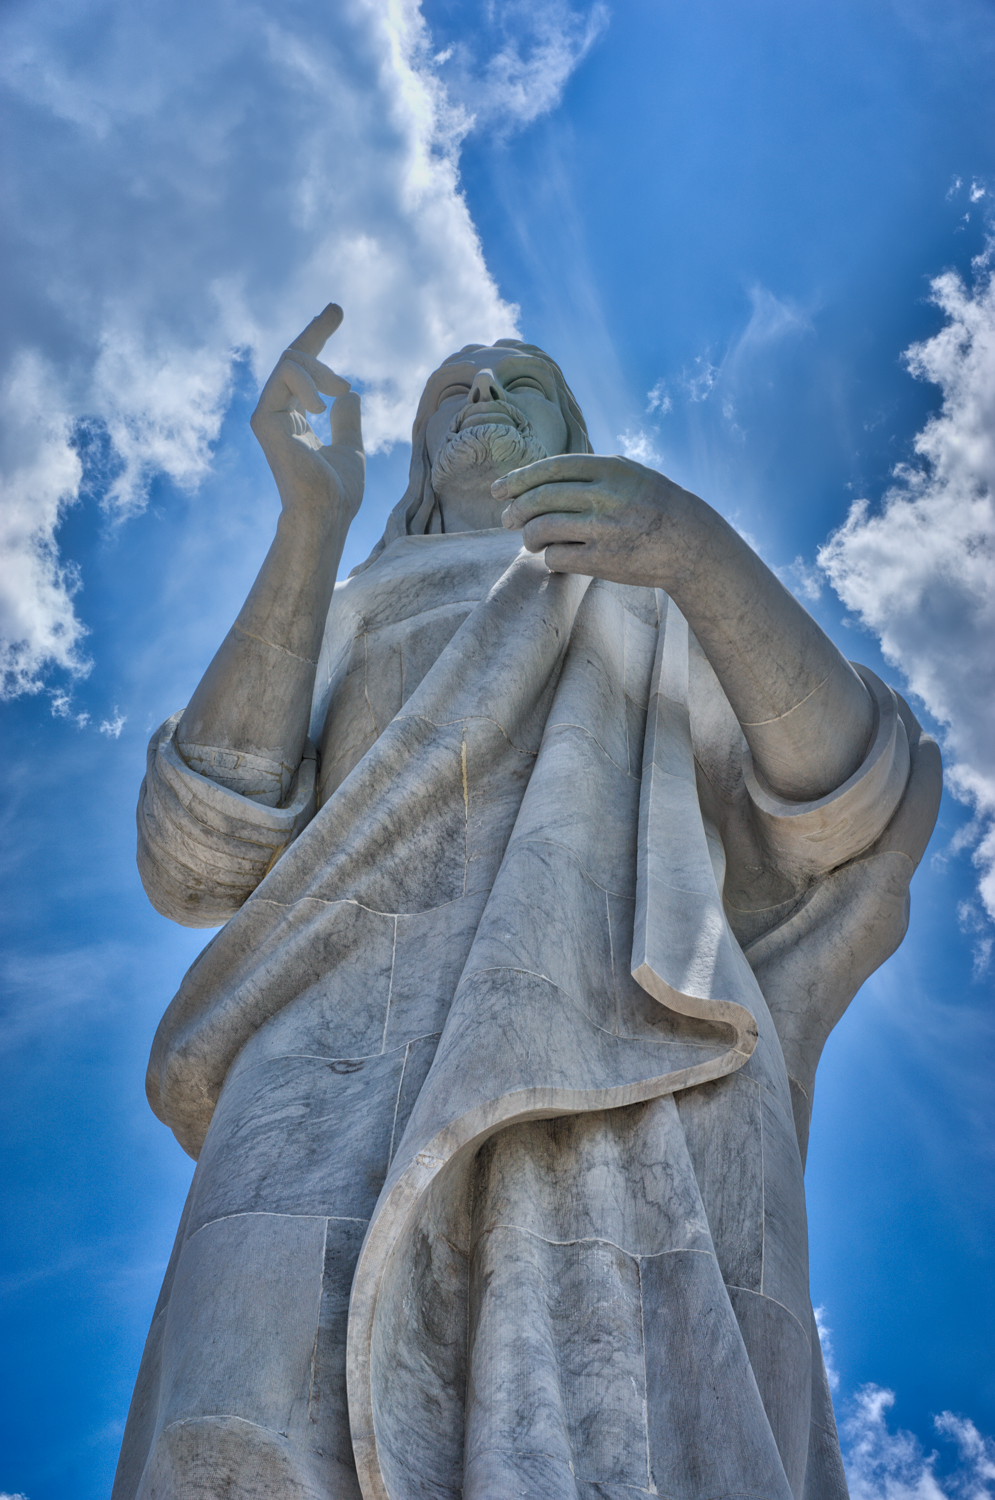 Cristo de La Habana statue by Jilma Madera. It's about 20 meters tall, located in a suburb called Casablanca,and overlooks the city of Havana. There are little gift shops near by to purchase cards and jewelry. Also across the street is La Cabana de Che, his headquarters building.